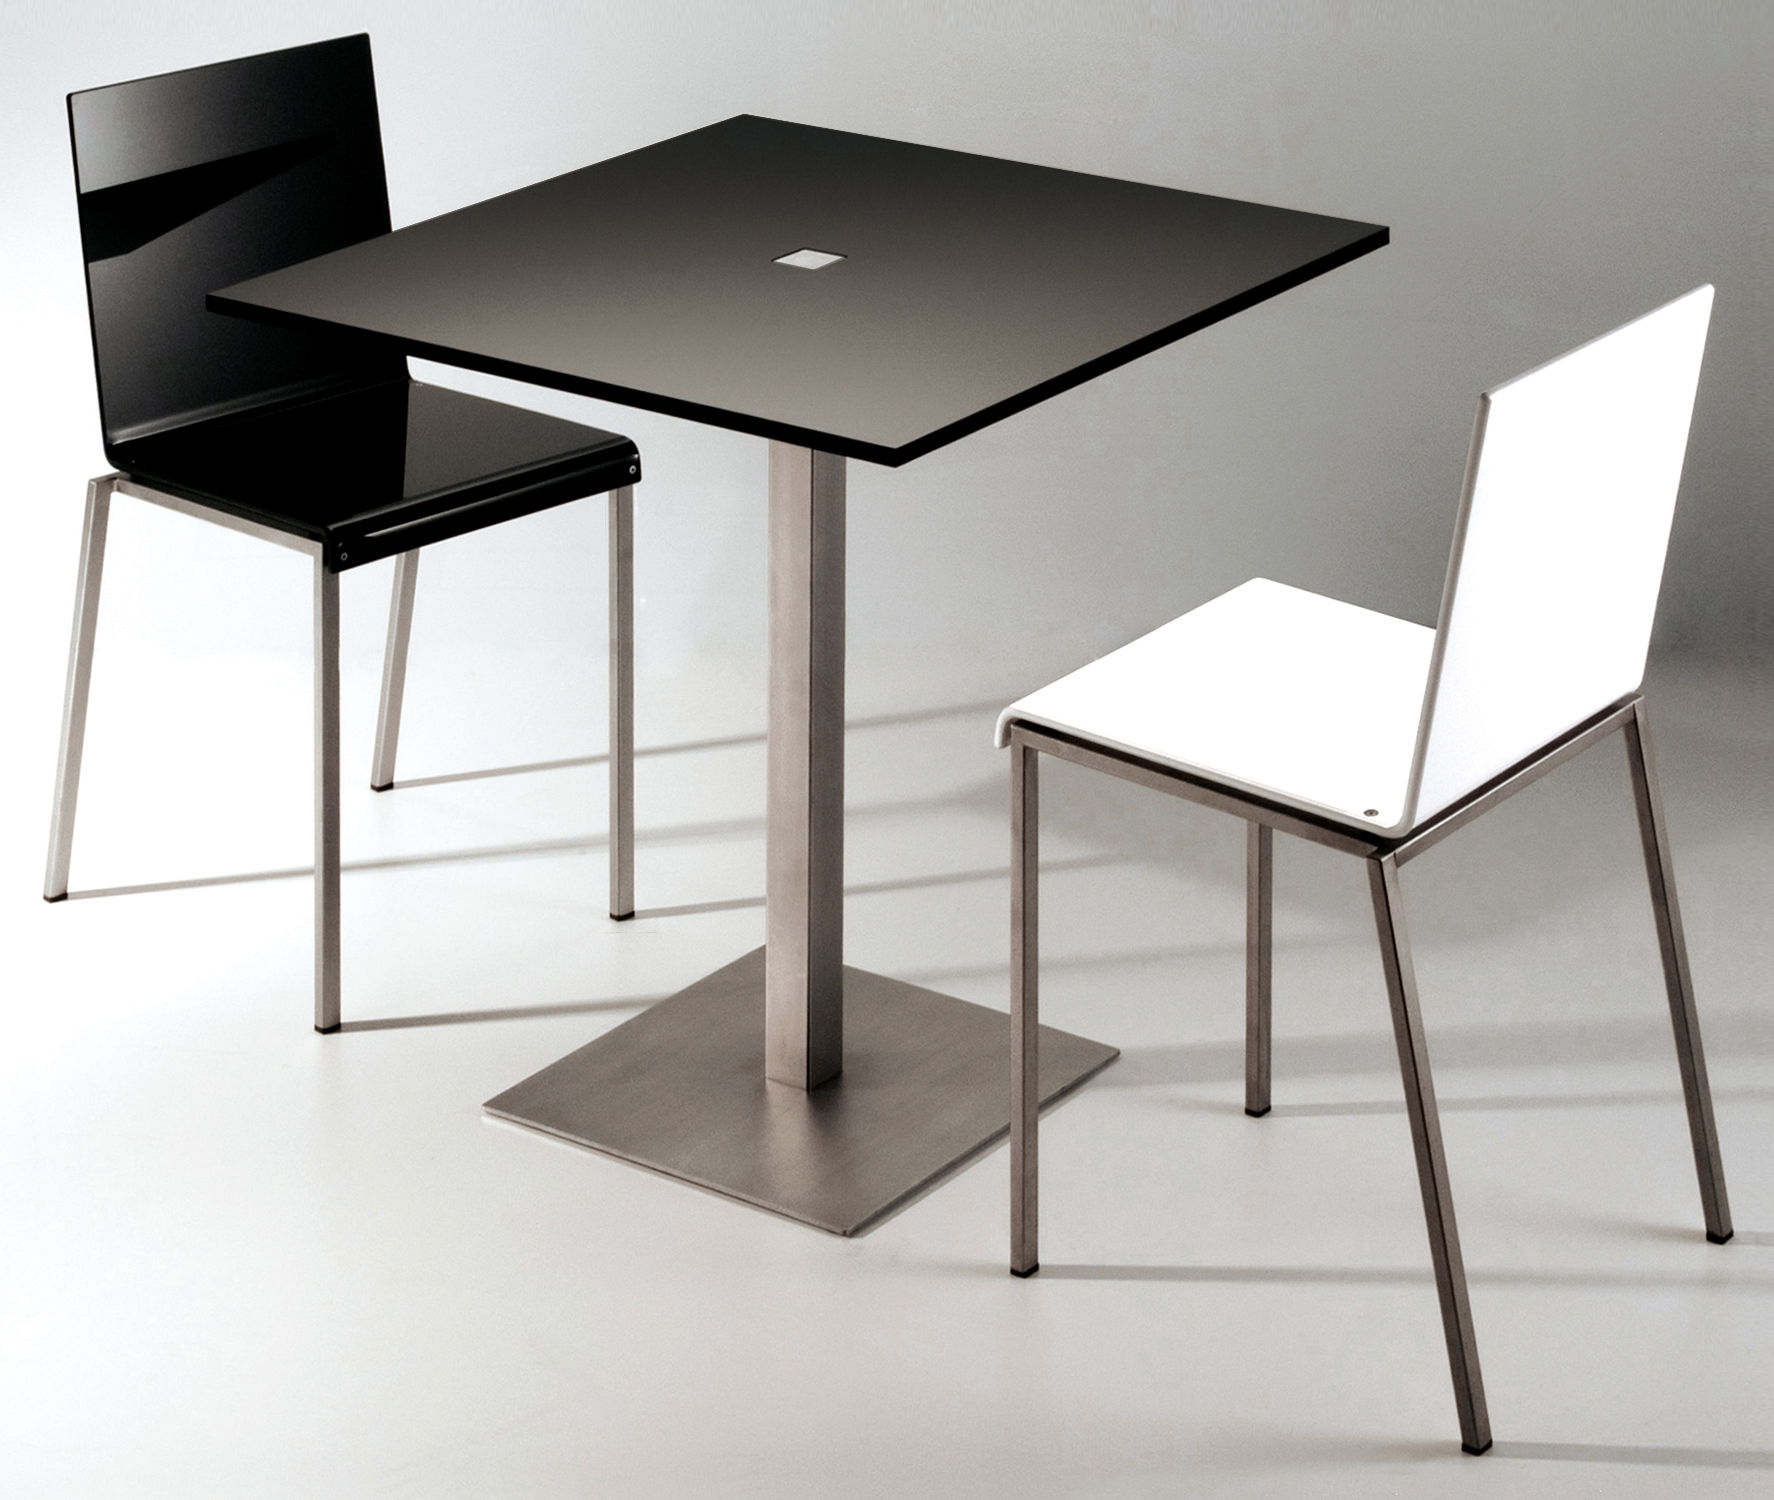 ... Furniture - Dining Tables - Slam Table by Zeus - Glossy white - 60x60  cm - 6e87bfa8f56d